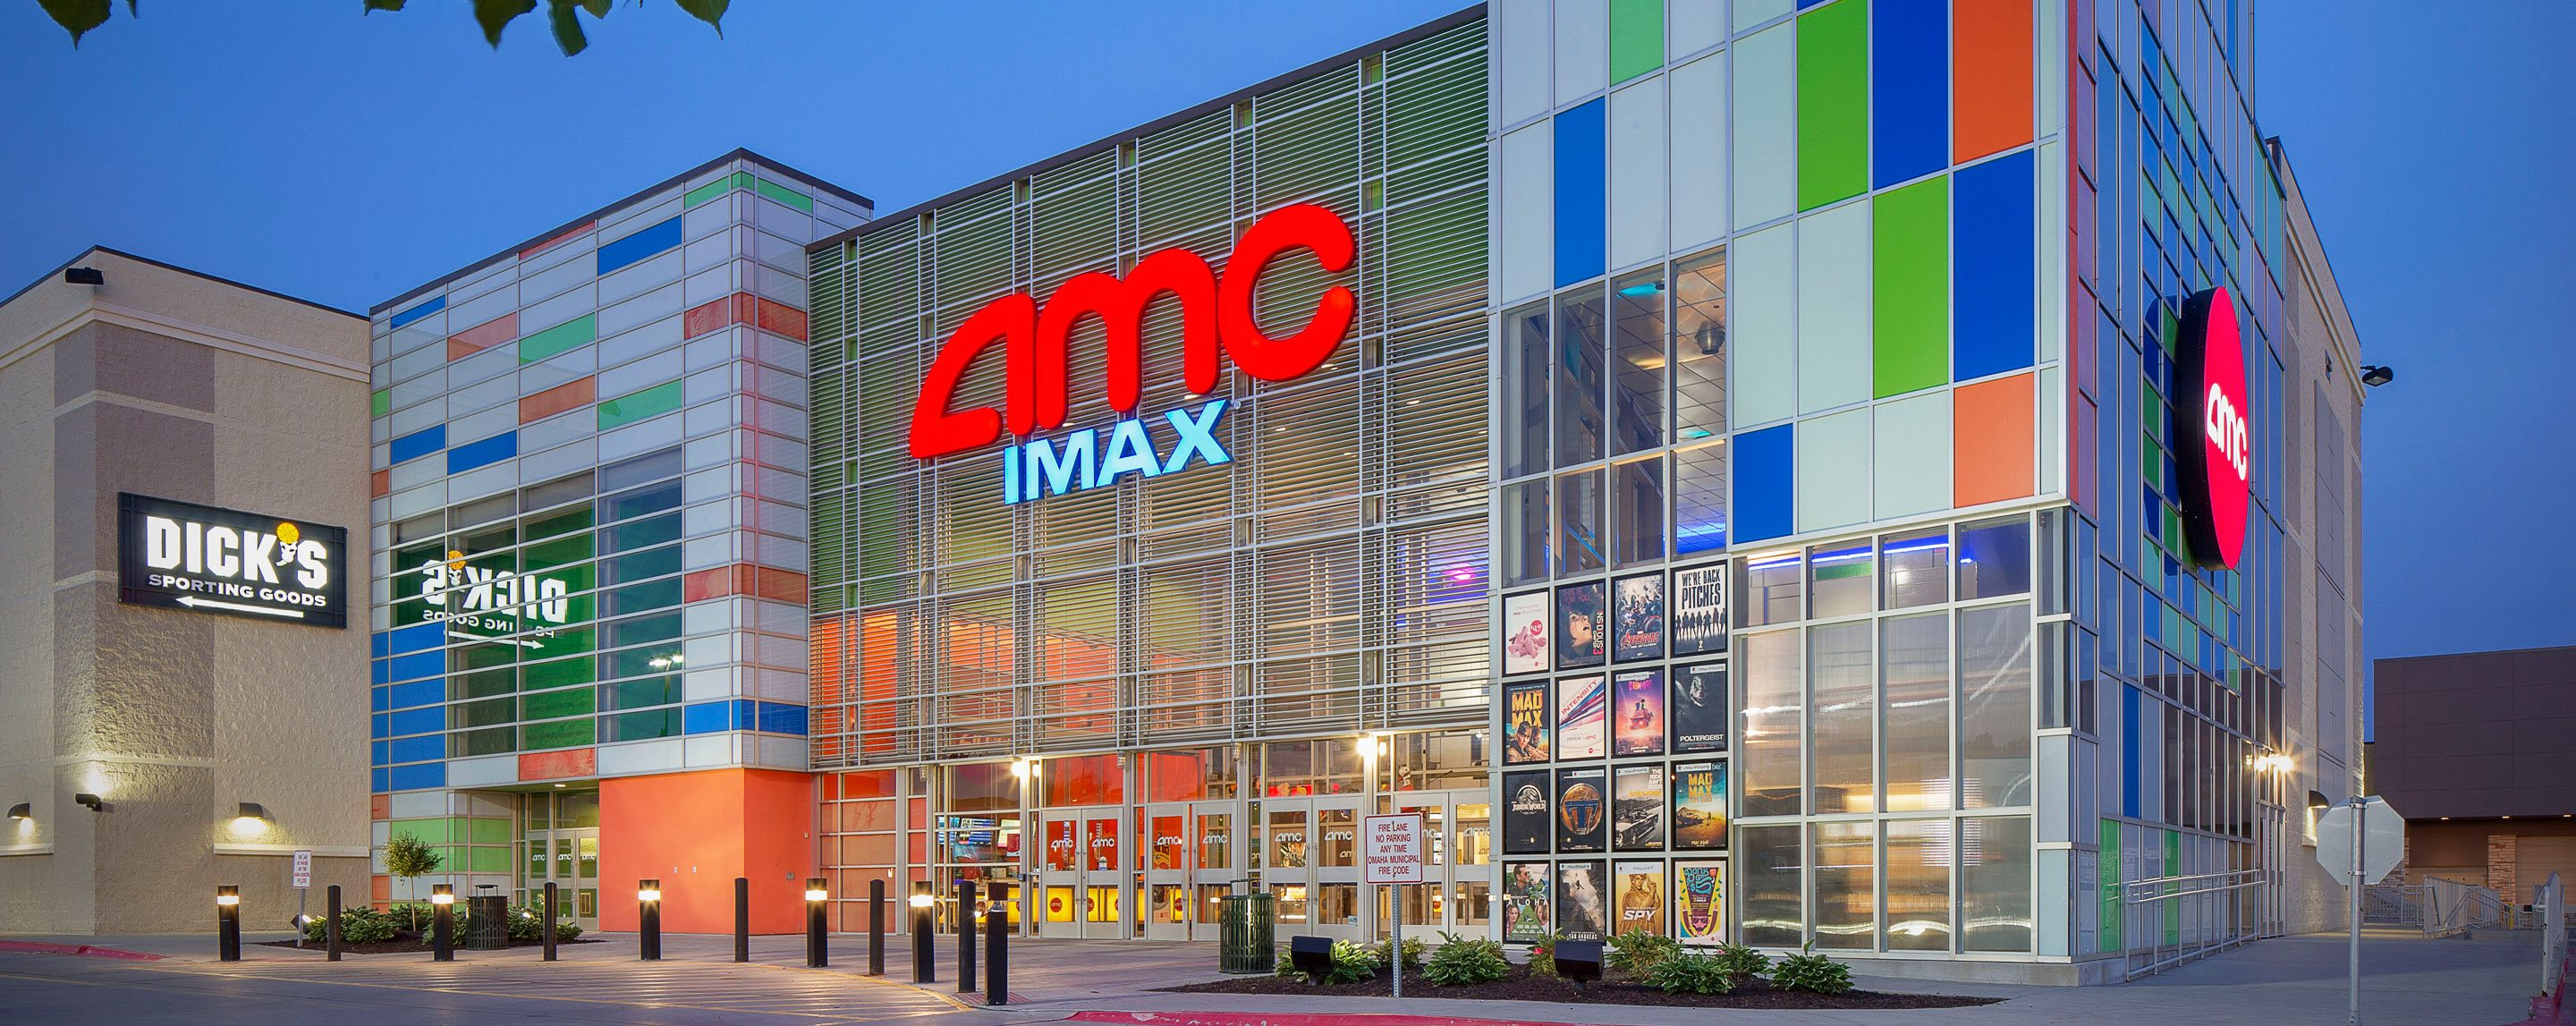 An AMC IMAX building stands in a complex next to a Dick's sporting goods store.